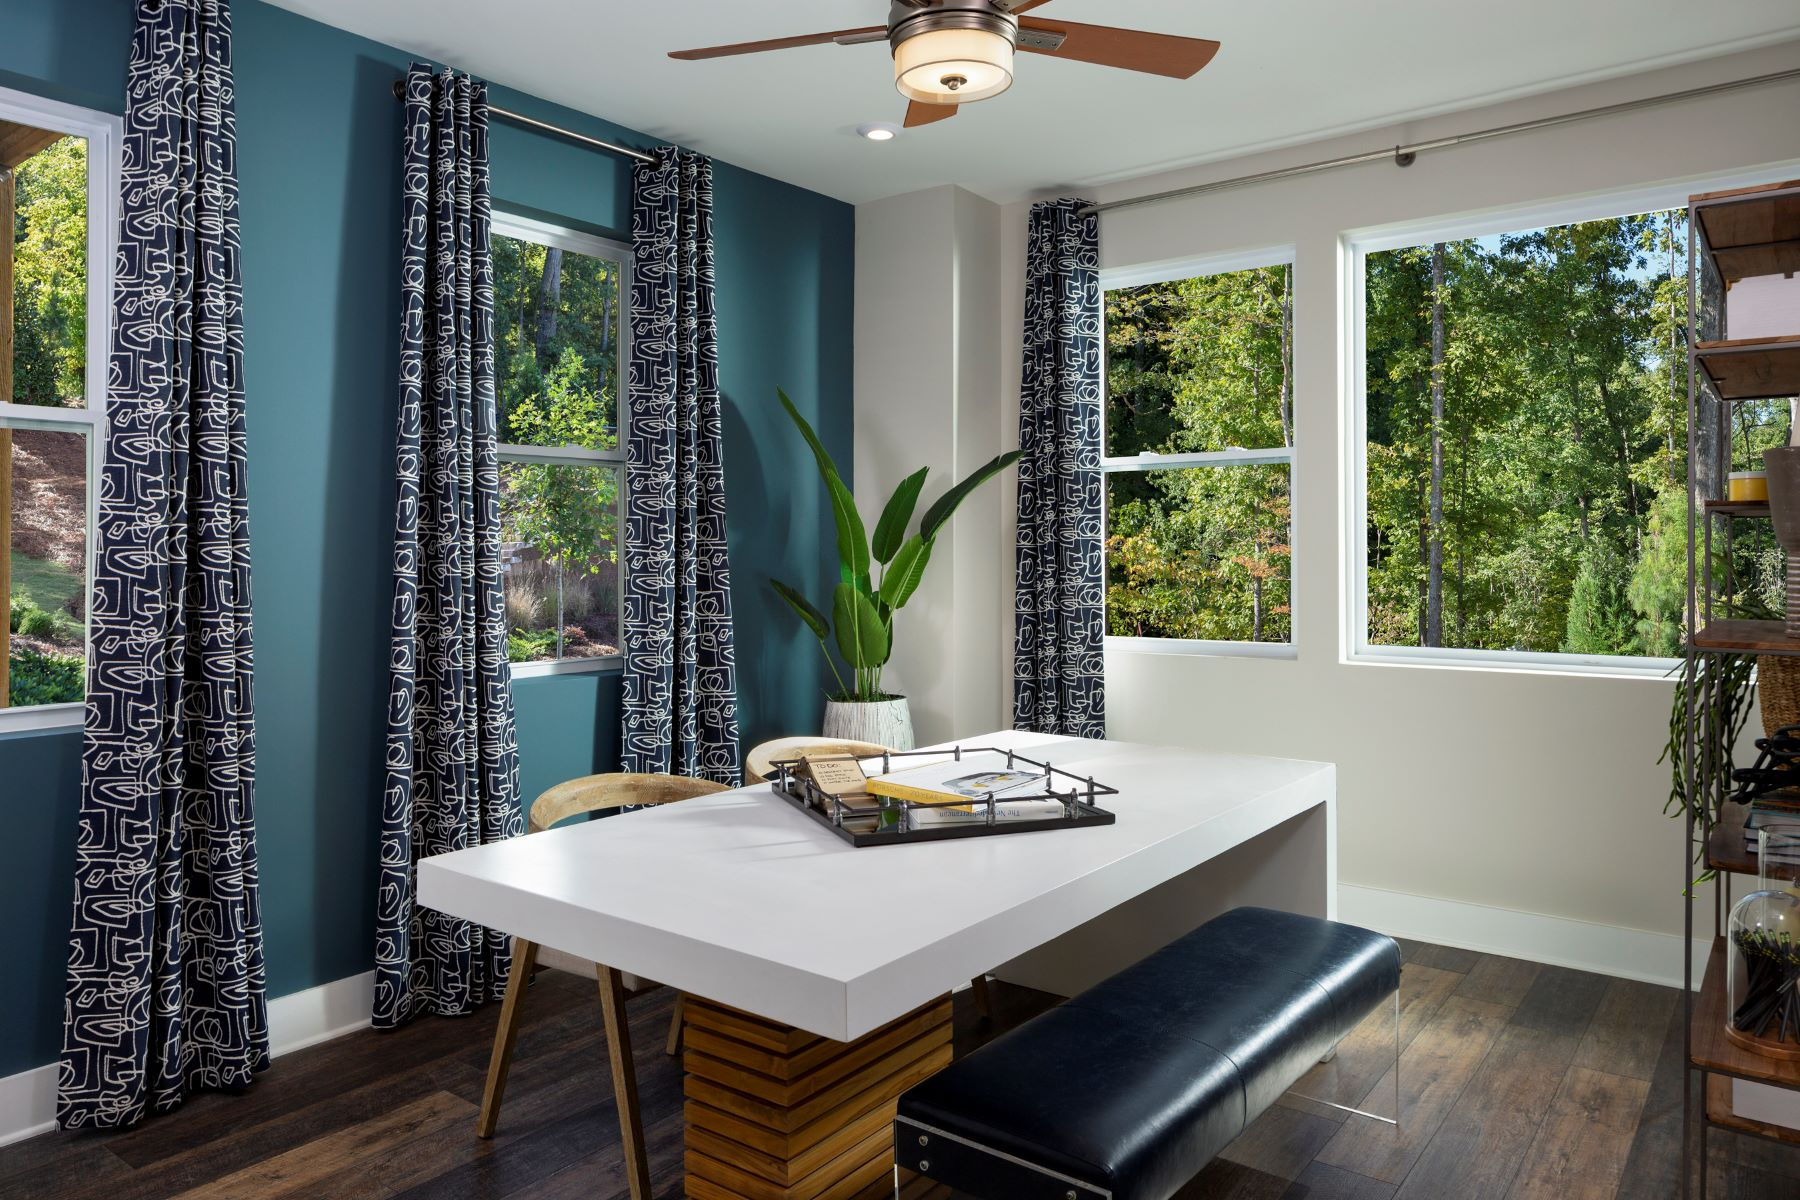 Soho Plan CLT_ATP_SoHo_Model_Ground_Floor_Bed_1800x1200 at Aria at The Park in Charlotte North Carolina by Mattamy Homes